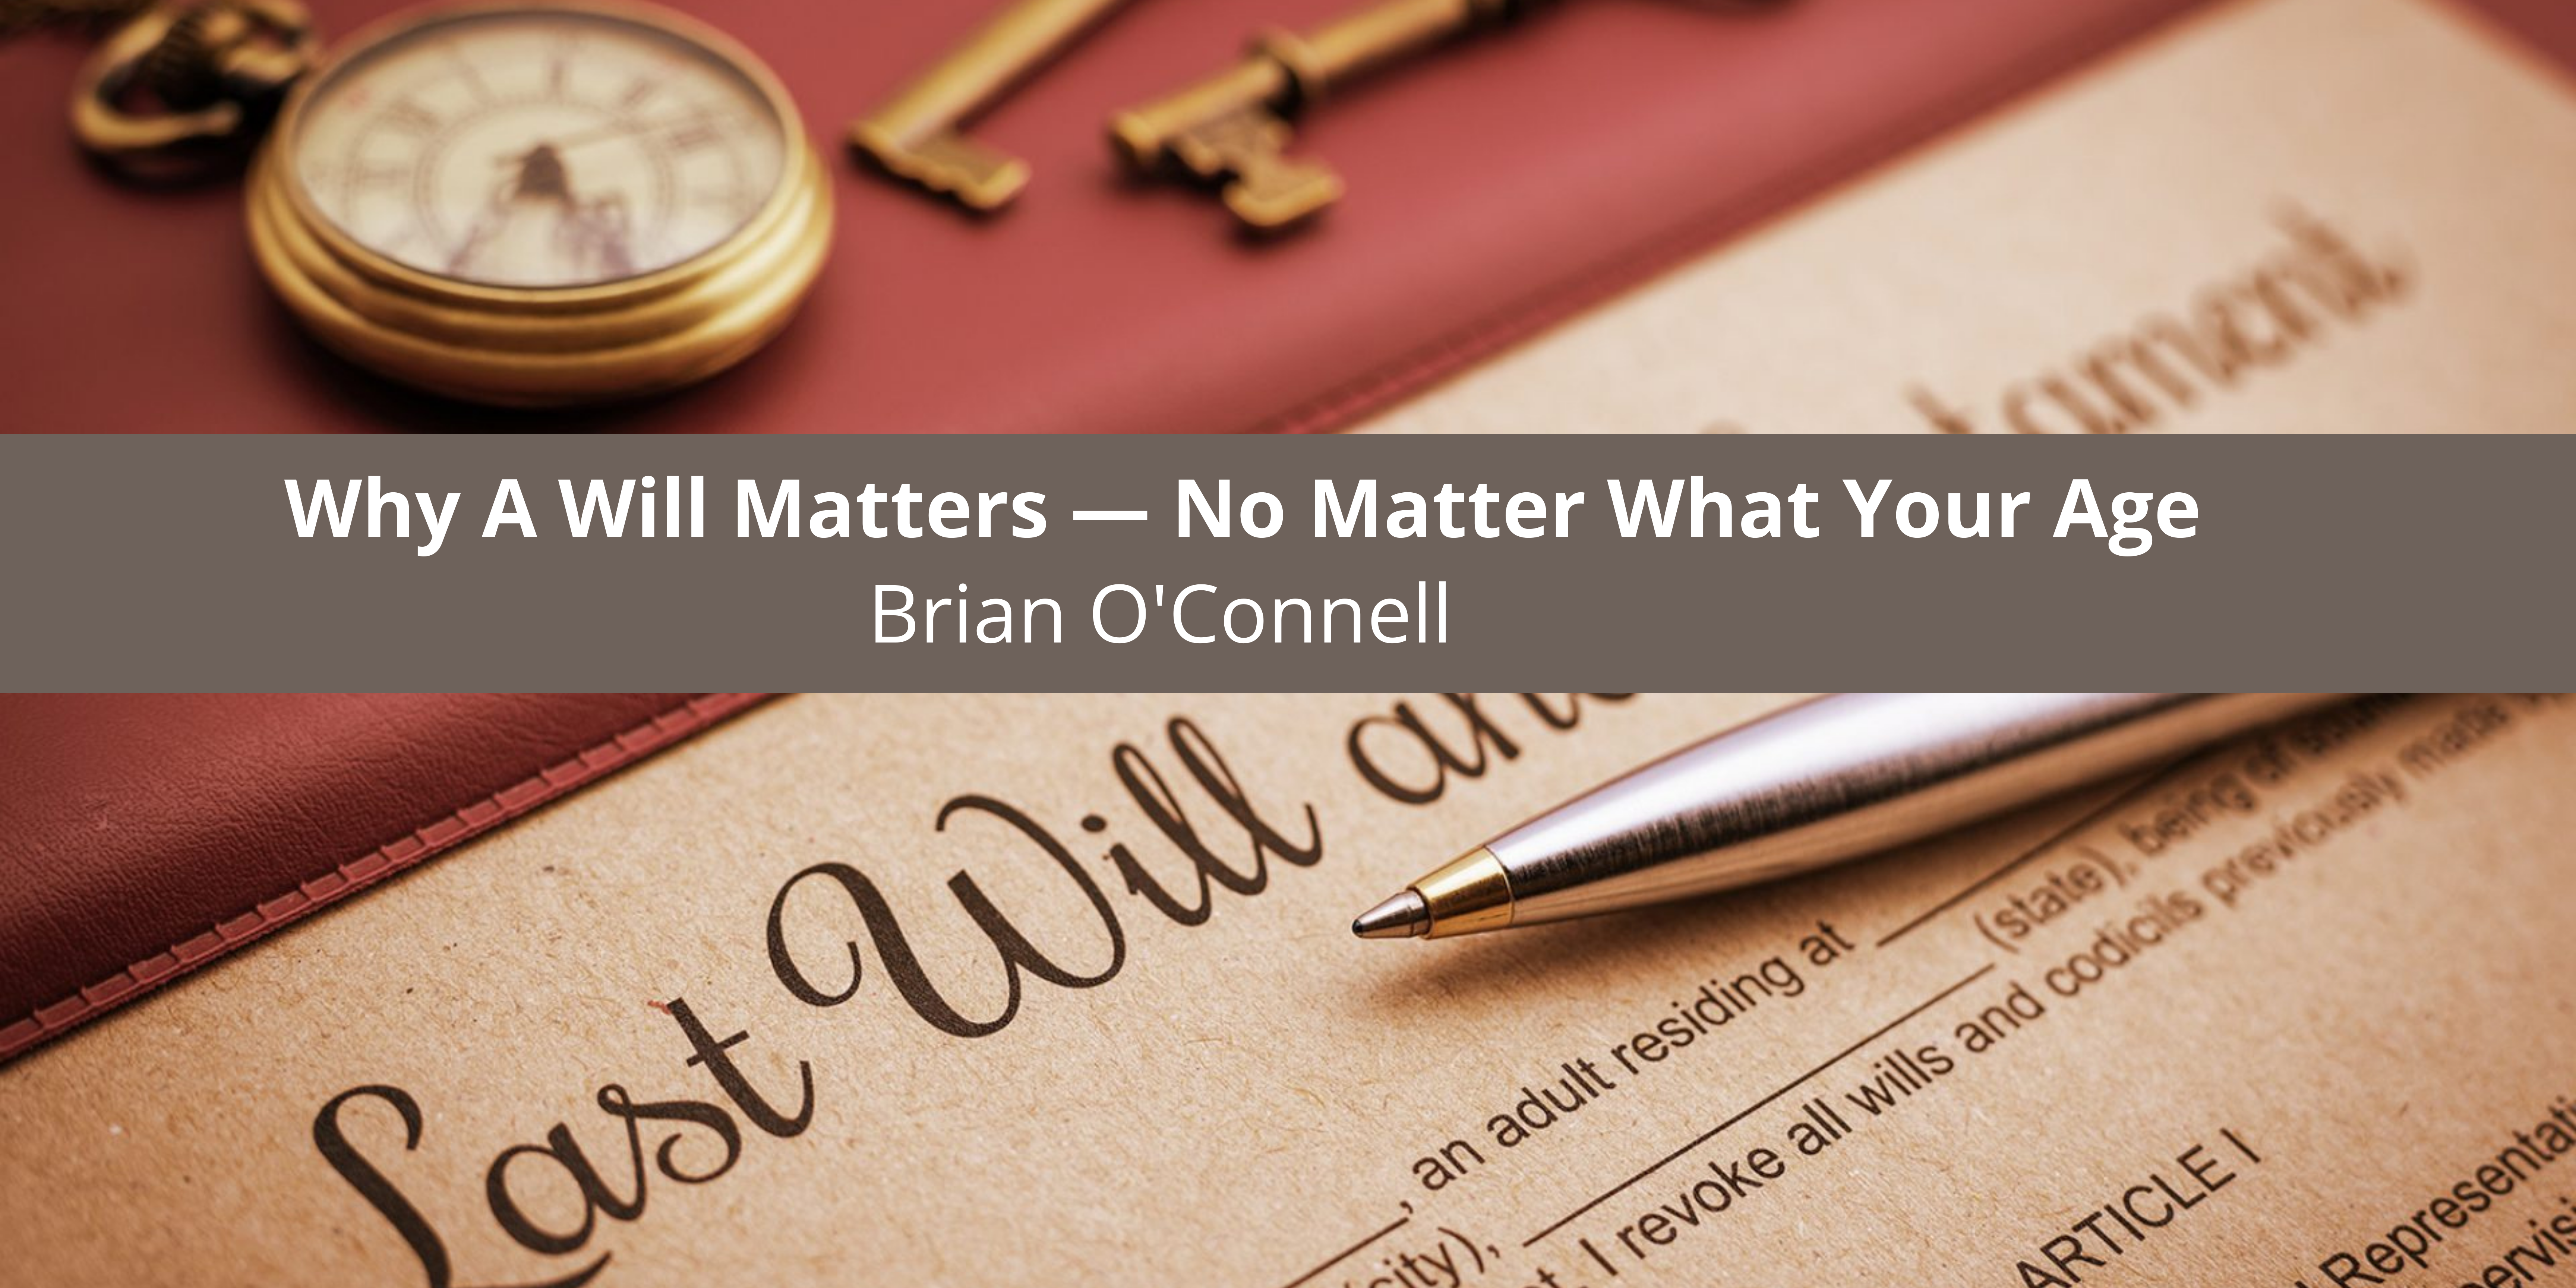 Do You Need A Will? Brian O'Connell Estate Trial Lawyer West Palm Beach Says Yes - For These Five Reasons